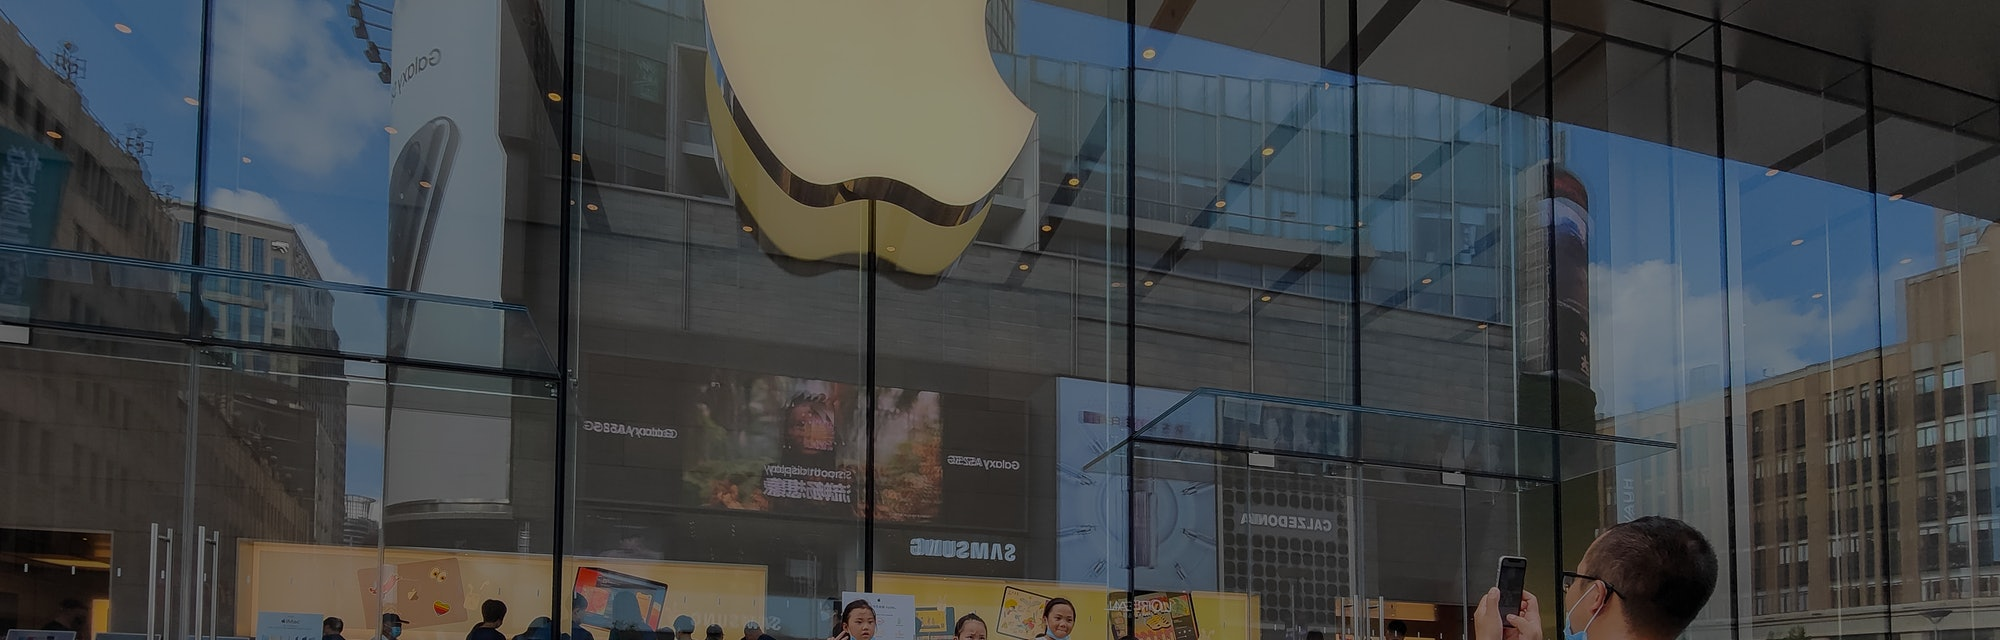 SHANGHAI, CHINA - AUGUST 6, 2021 - The official Apple Store is seen at the Nanjing East Road pedestr...